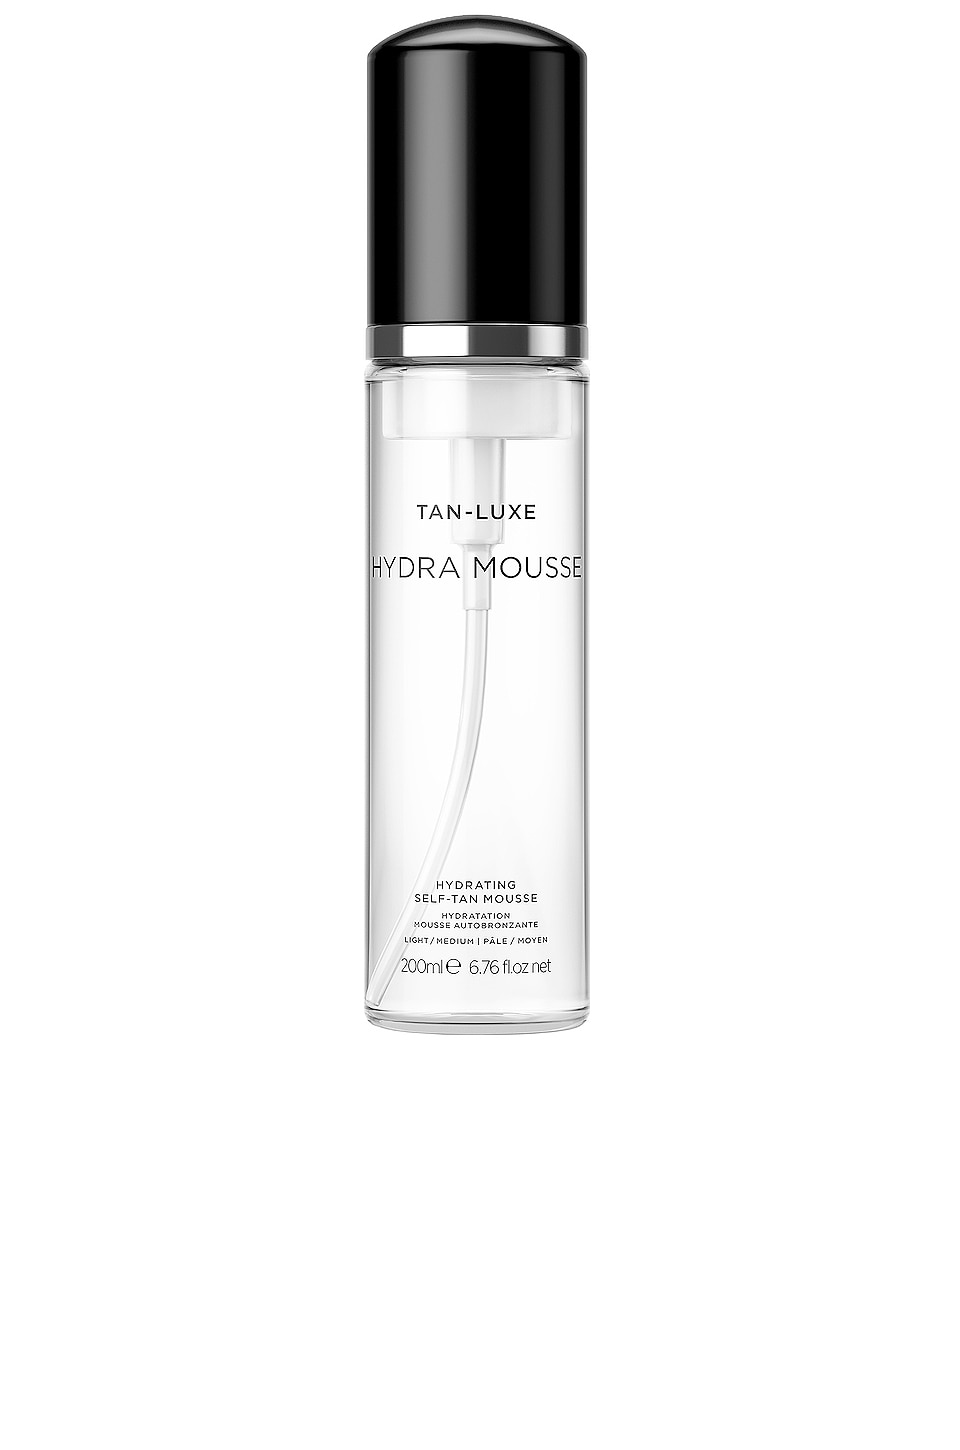 Tan Luxe Hydra-Mousse Hydrating Self-Tan Mousse in Light / Medium